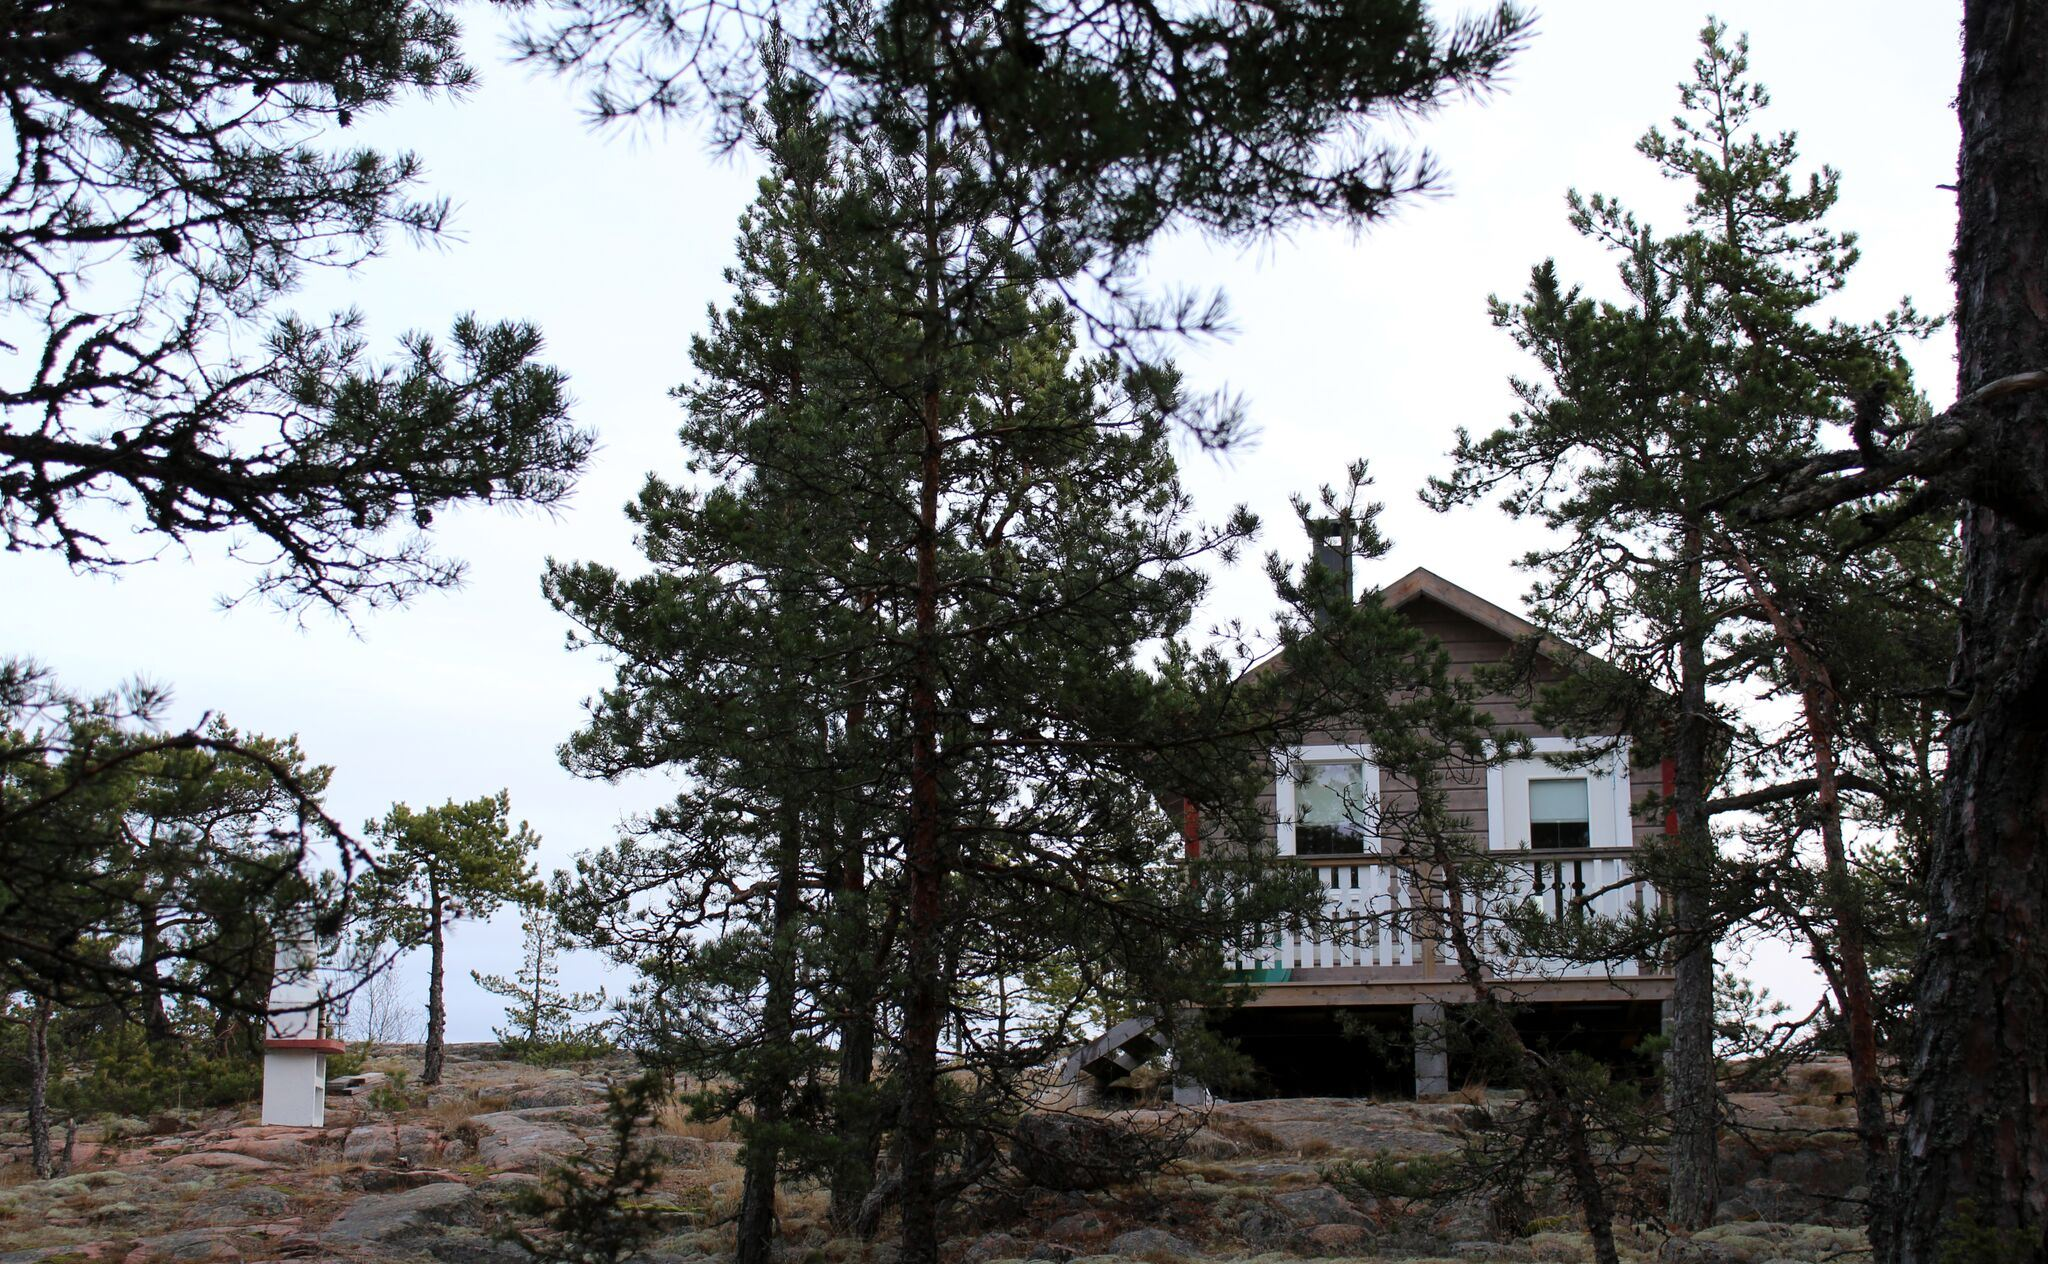 Sandösund Resort and Hermit Cottage on island Gyllenklobb